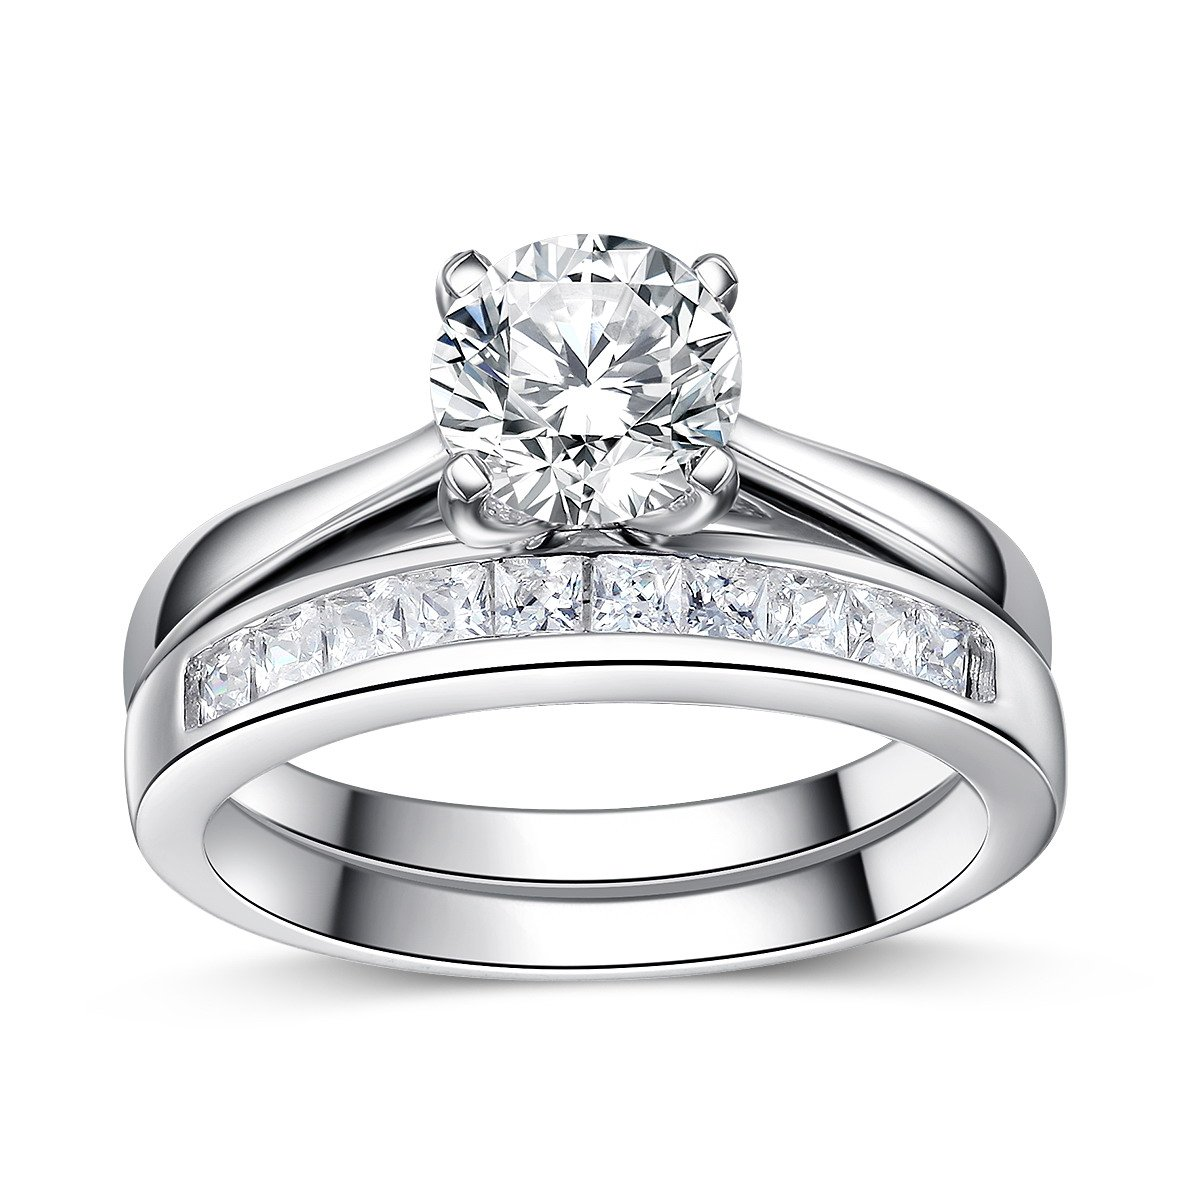 Sreema London 925 Sterling Silver AAAAA Cubic Zirconia Accent Love Forever Wedding Rings 5 1/4